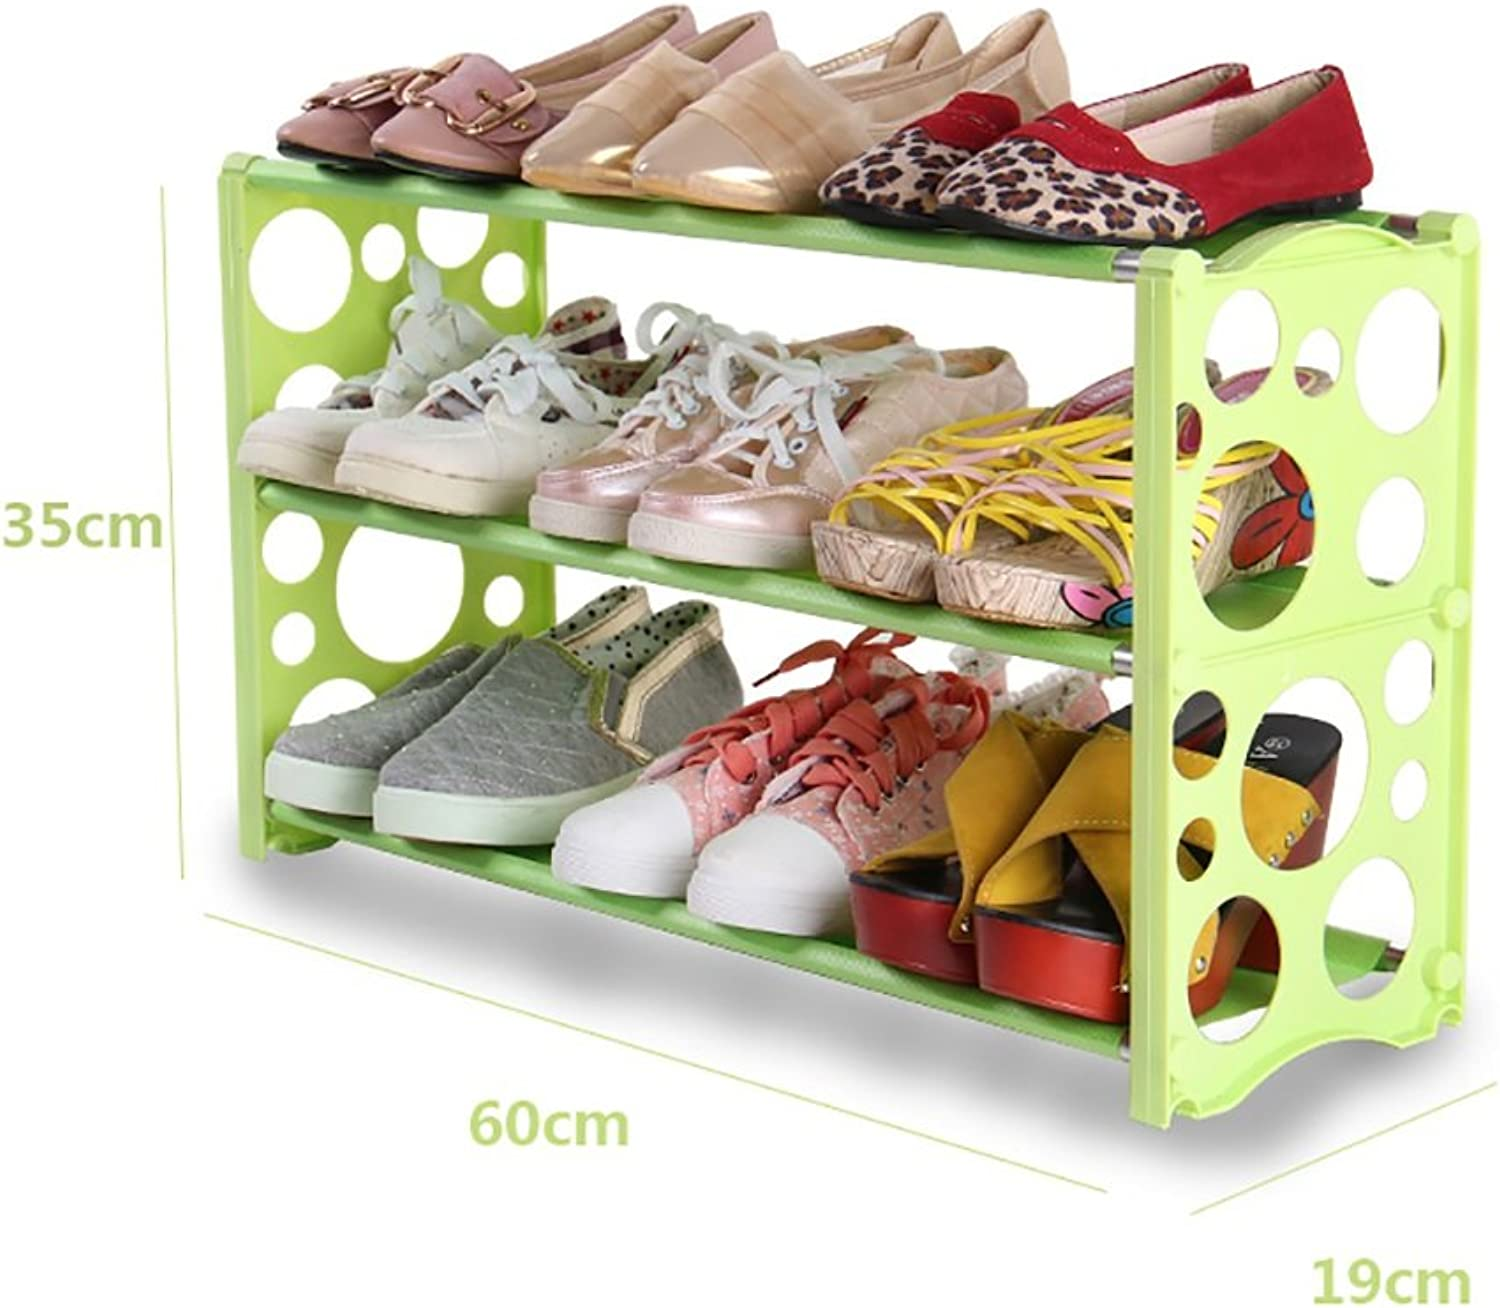 HHQ shoes Racks Multi-Layer Simple Assembly Economical Home Storage Dormitory Bedroom Space-Saving Function Modern Simple shoes Cabinet (color   A-1)